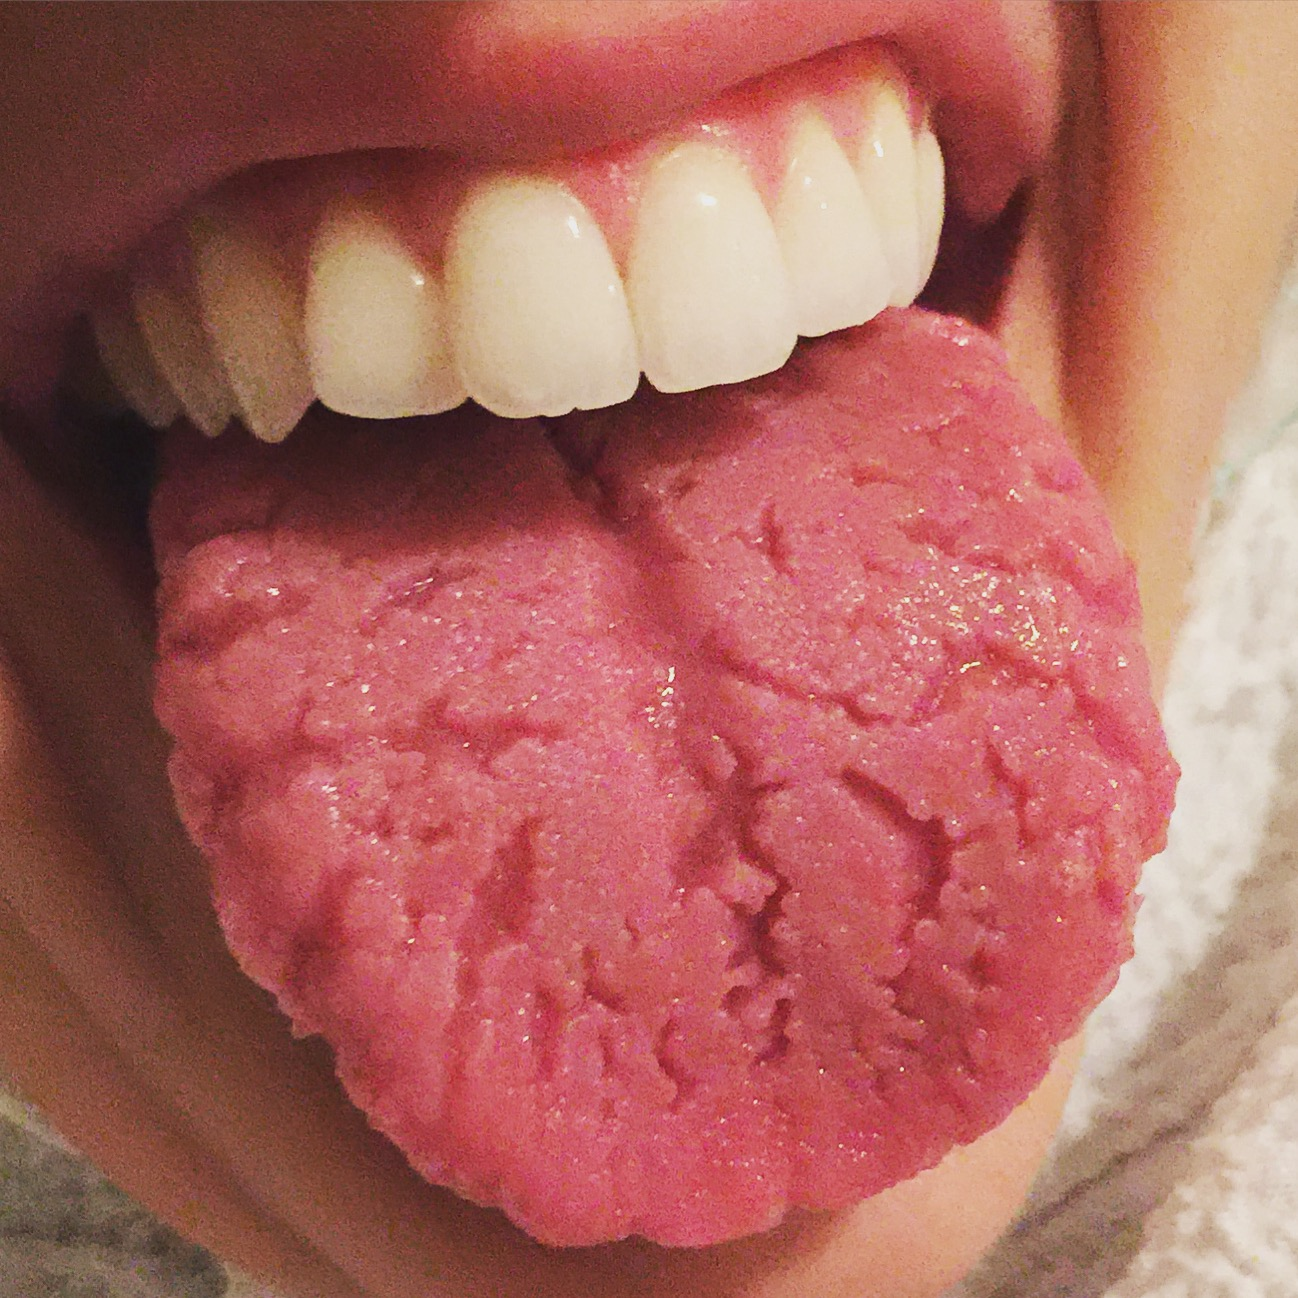 Hpv tongue nhs - RELATED ARTICLES